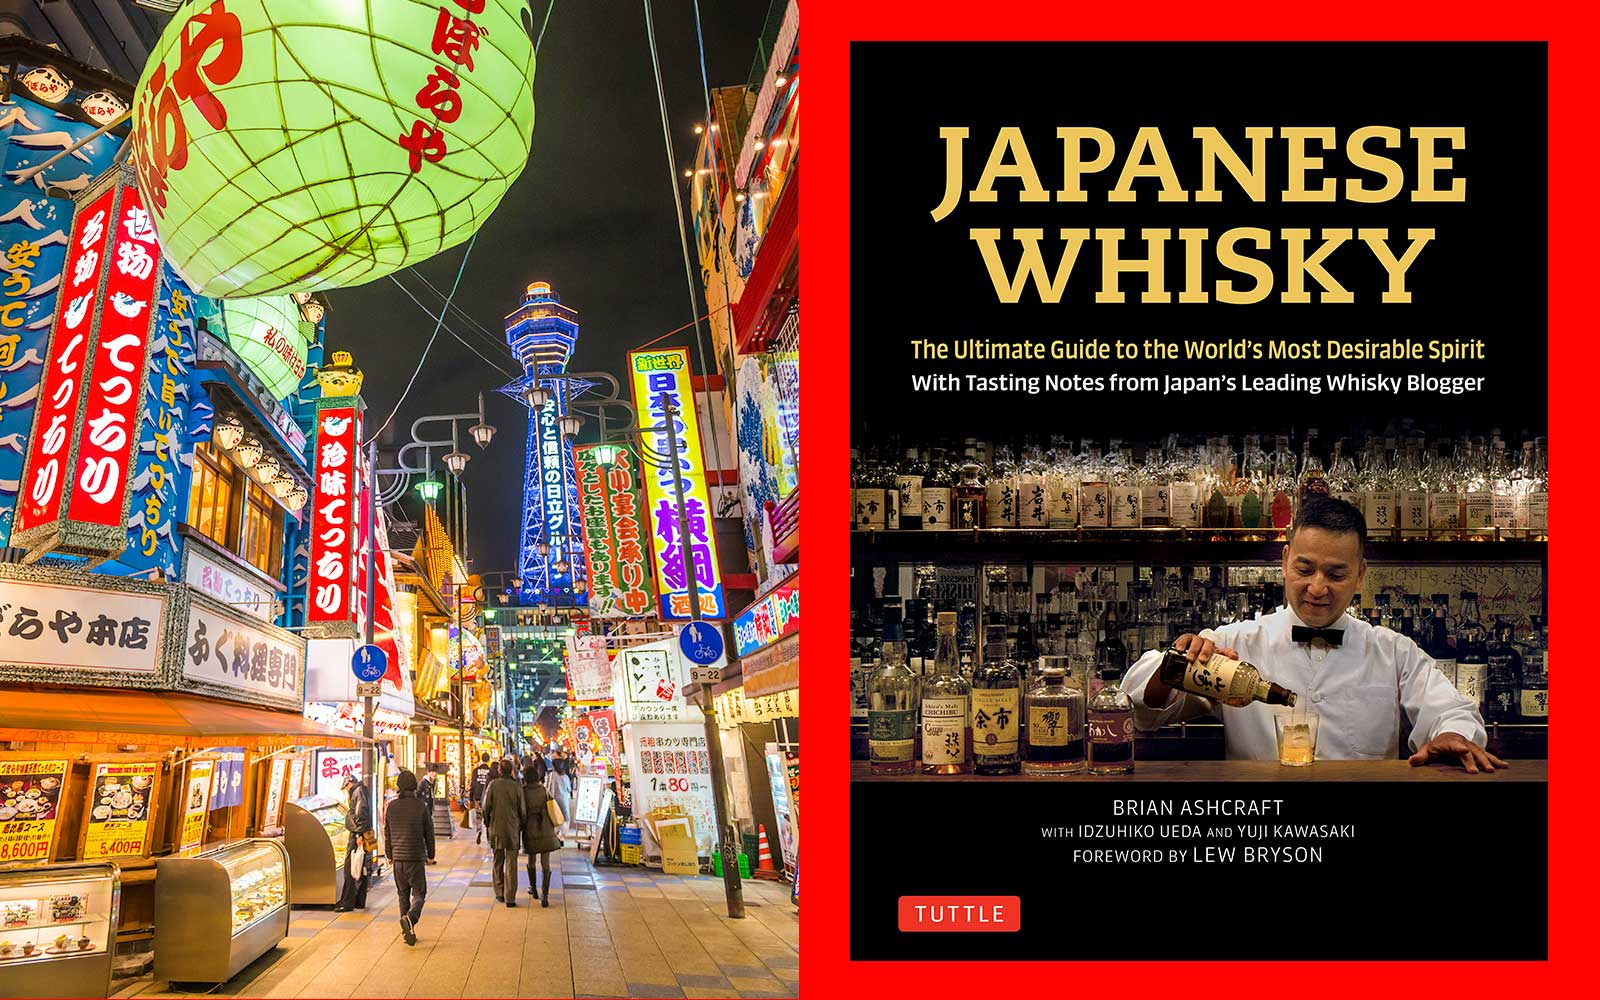 Nightlife in Osaka, Japan and the book Japanese Whisky